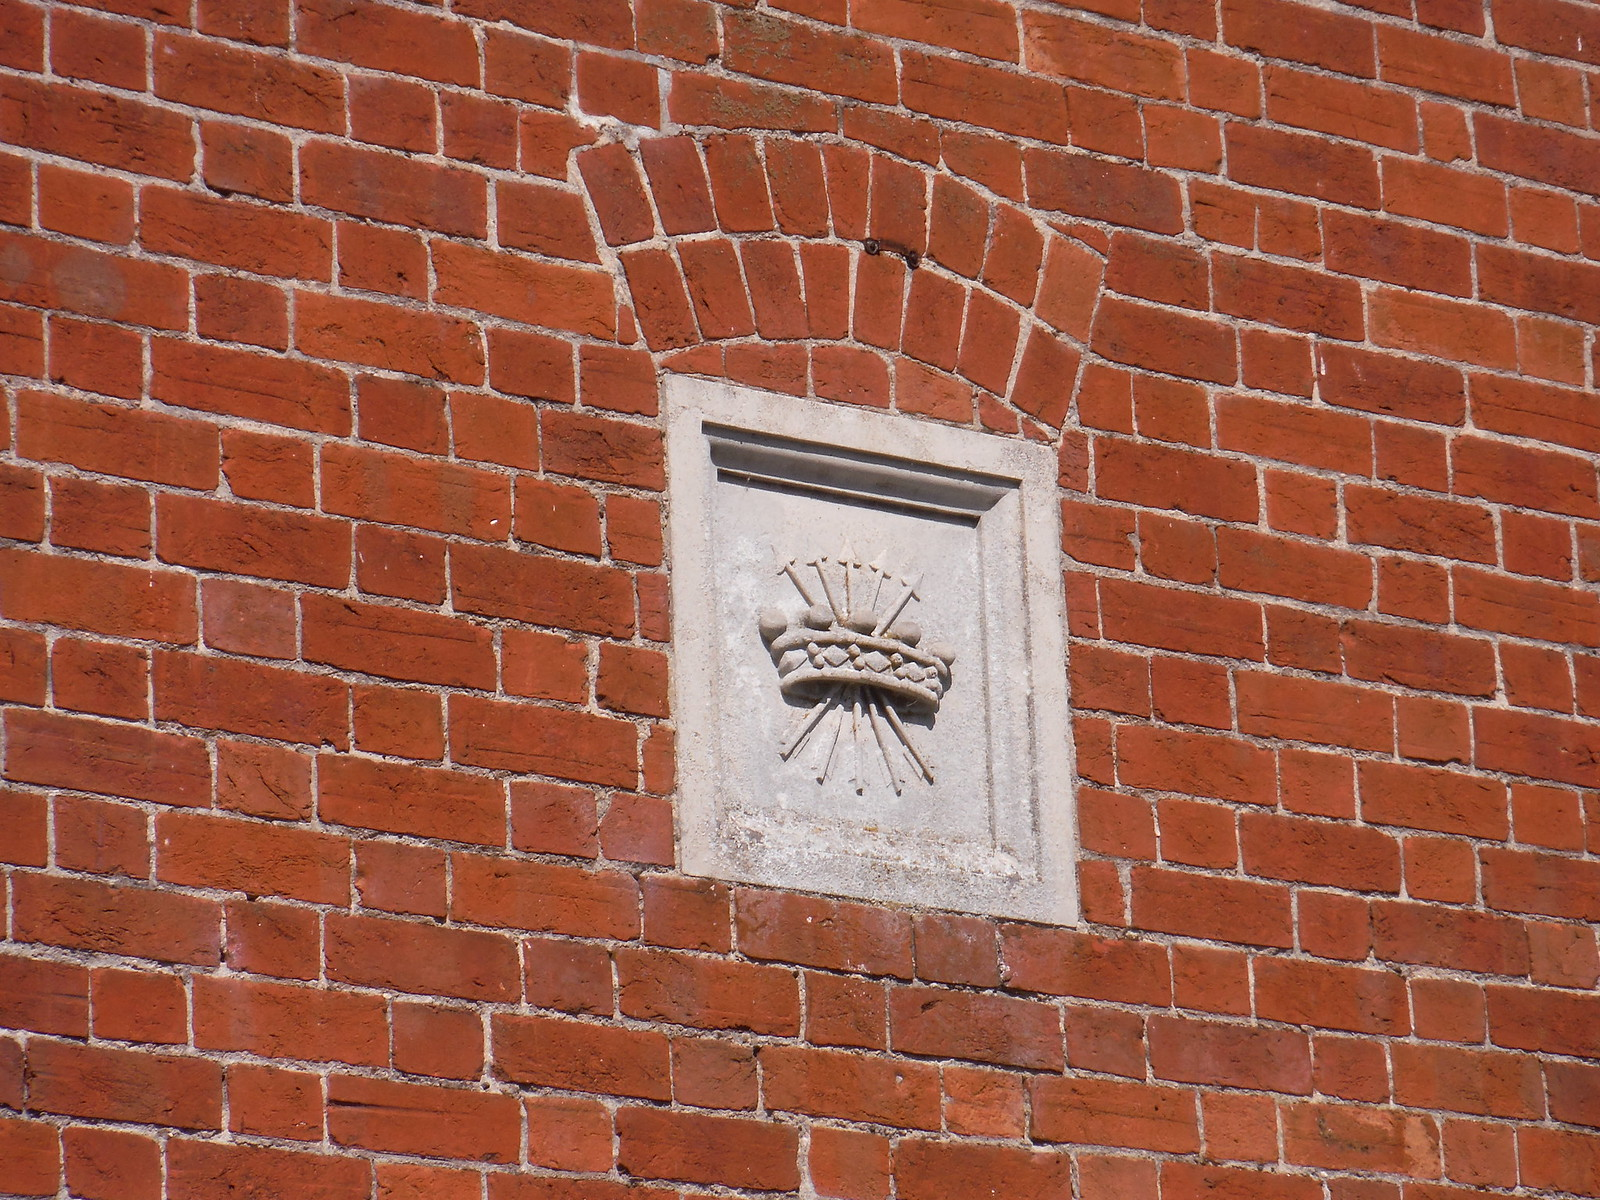 Rothschild Coat of Arms on House Wall, Upper Winchenden SWC 192 Haddenham to Aylesbury (via Waddesdon)